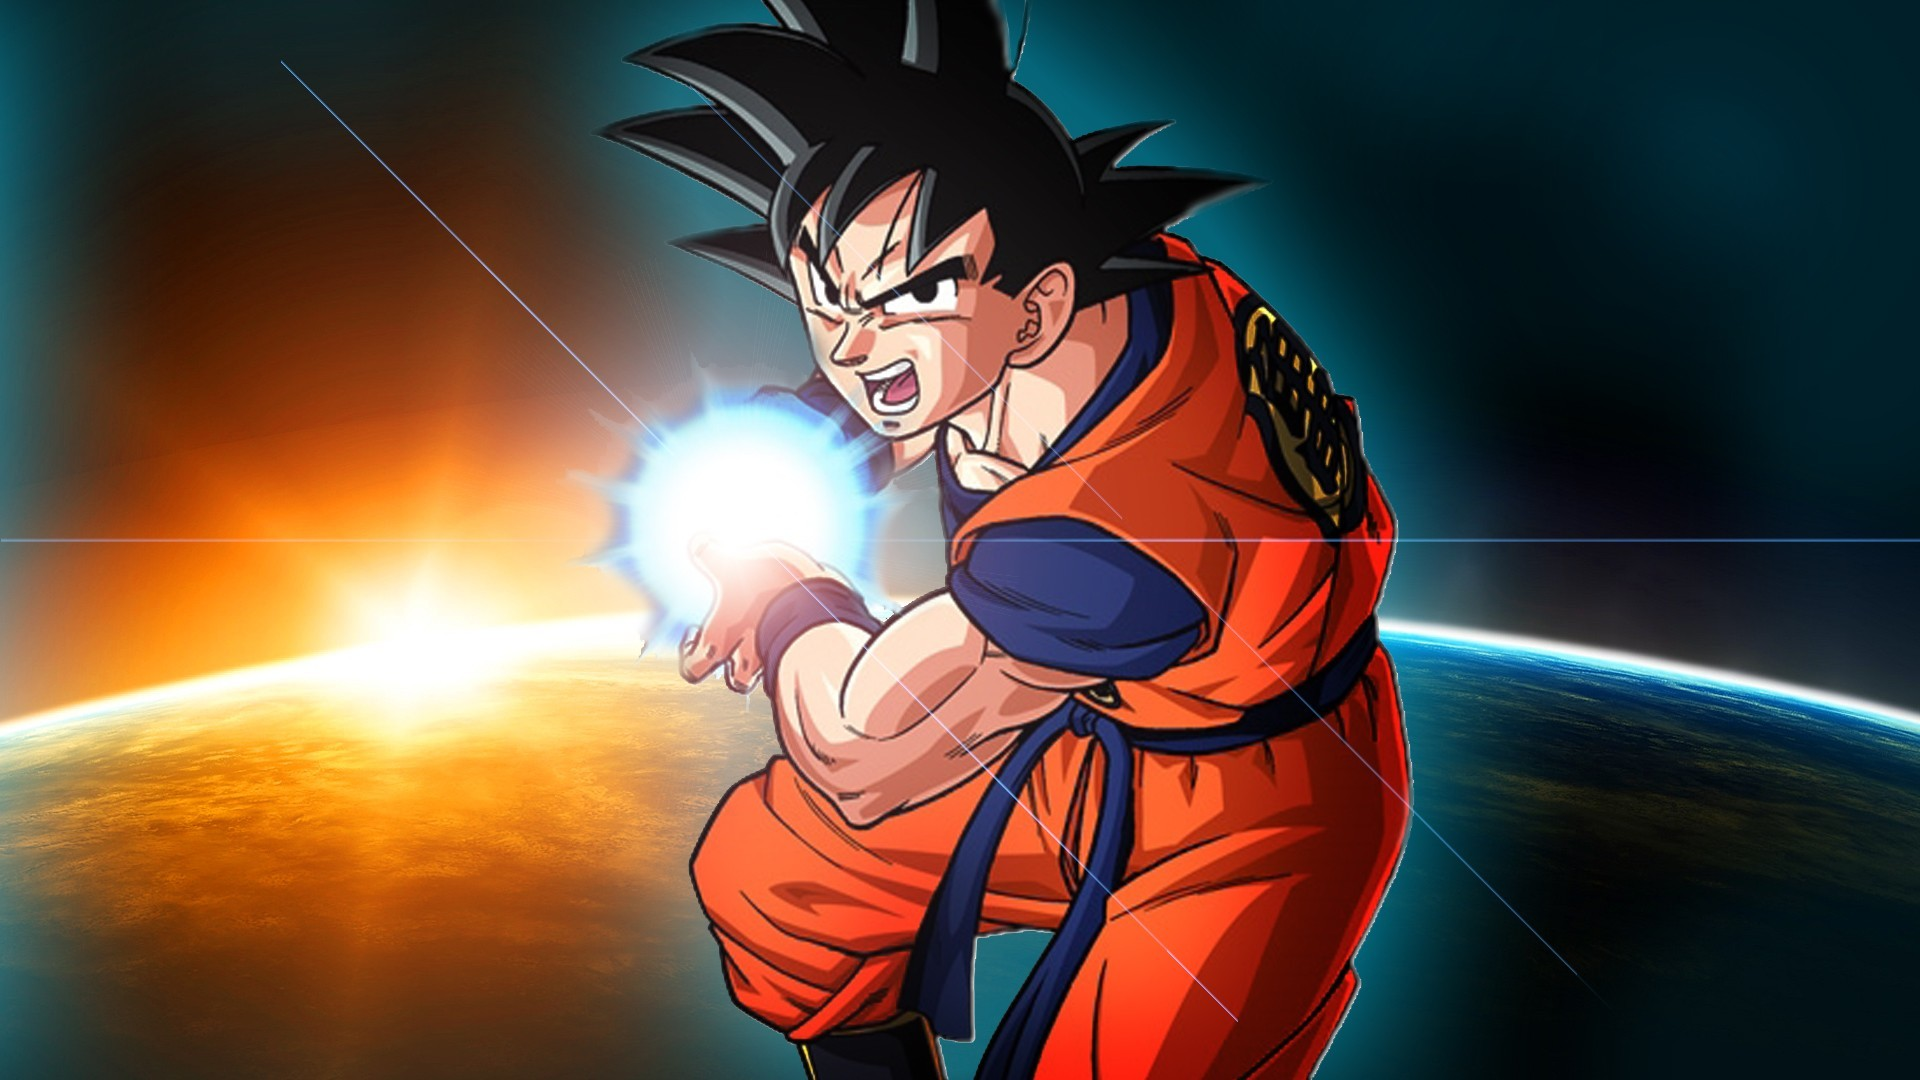 1920x1080 Dragon Ball Z Goku Wallpaper Download Jpb